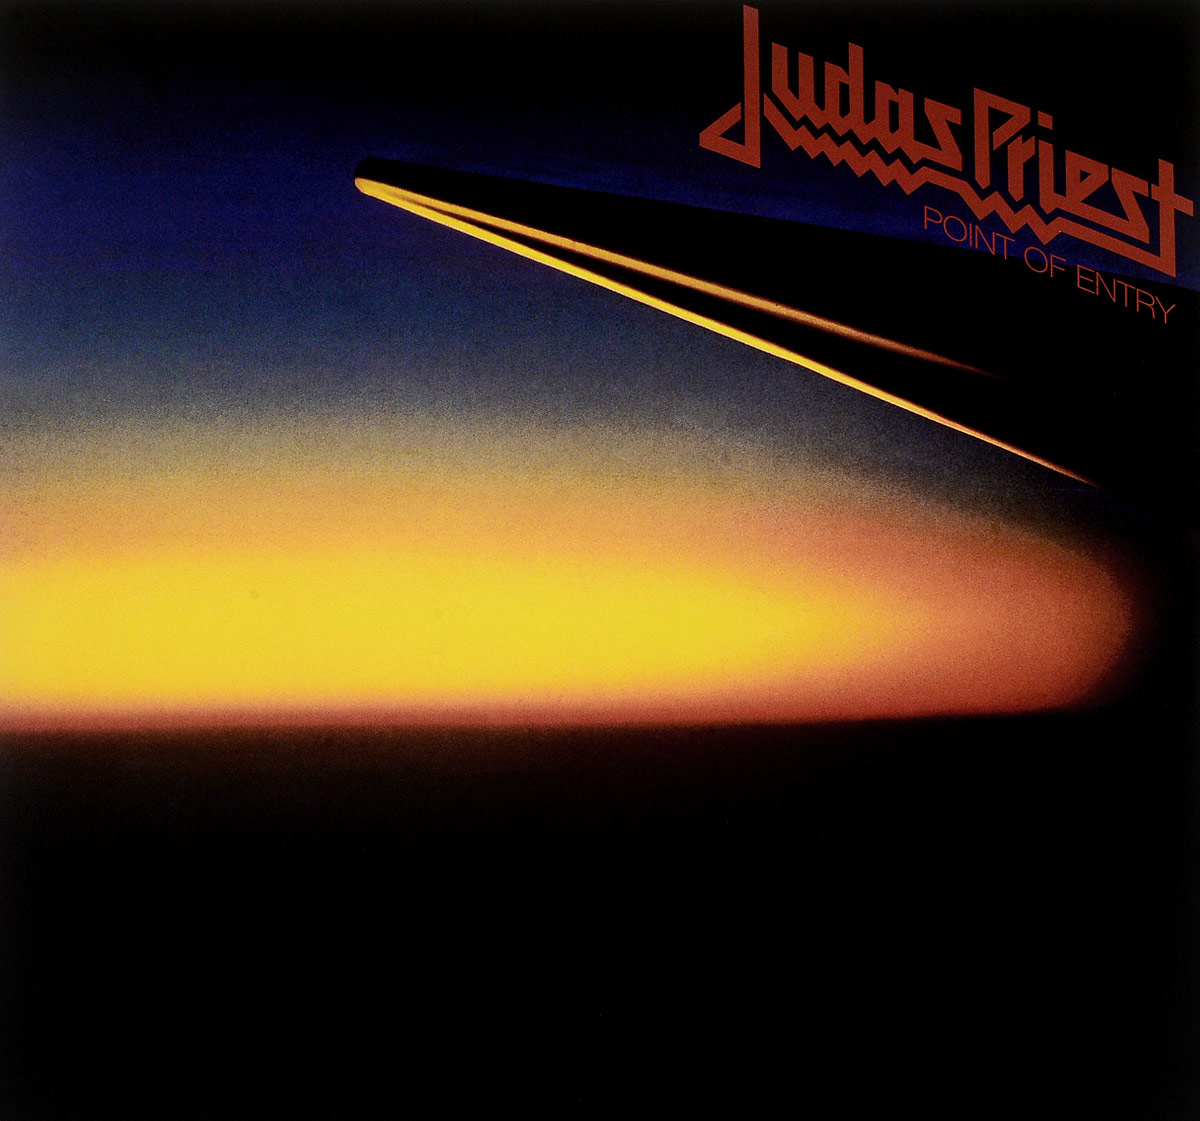 Judas Priest Judas Priest. Point Of Entry (LP) масляный радиатор ballu classic boh cl 05wrn 1000вт белый [boh cl 05wrn 1000]